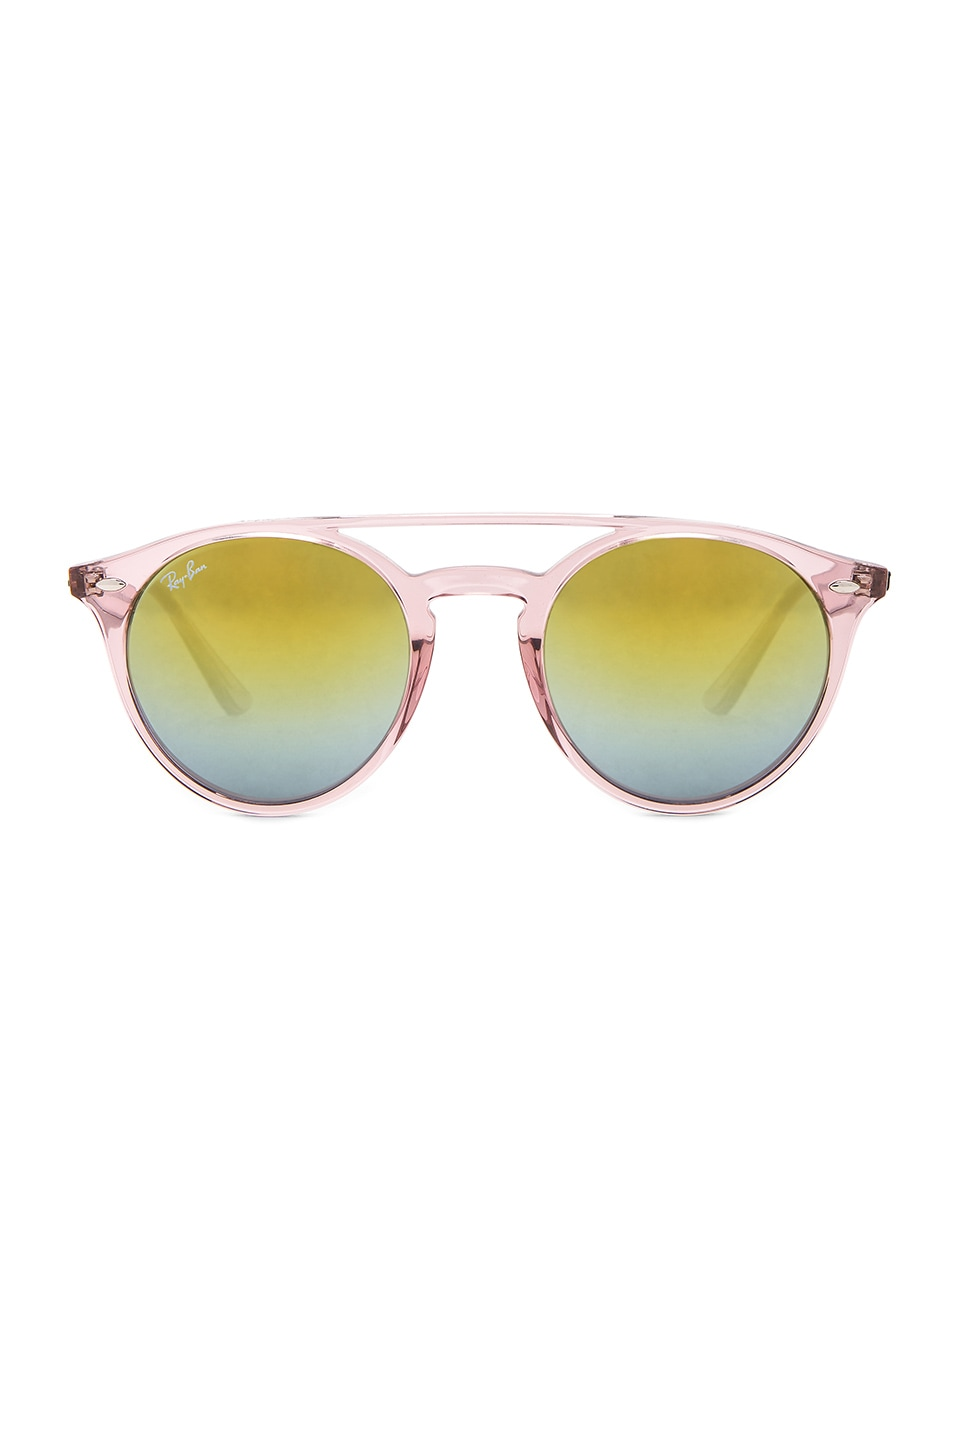 Ray-Ban 0RB4279 in Pink & Green Gradient Mirror